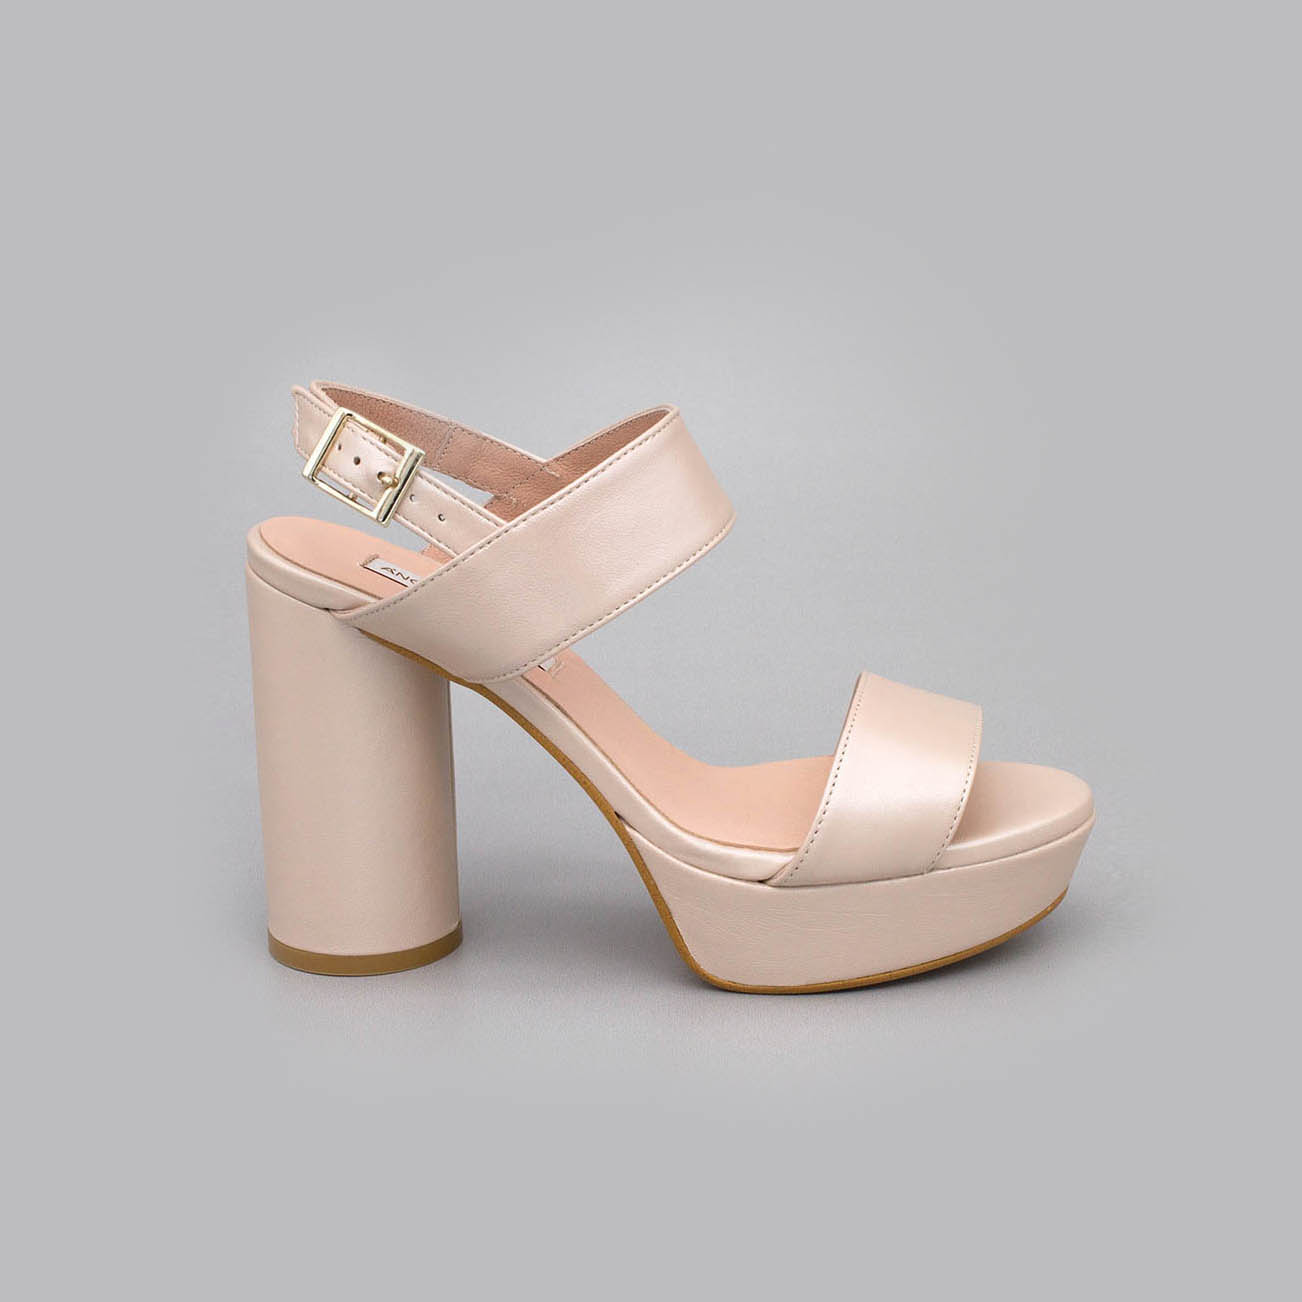 sandal leather Angel Alarcon bride spring summer 2020 2021 woman subject ankle round platform heel shoe color nude